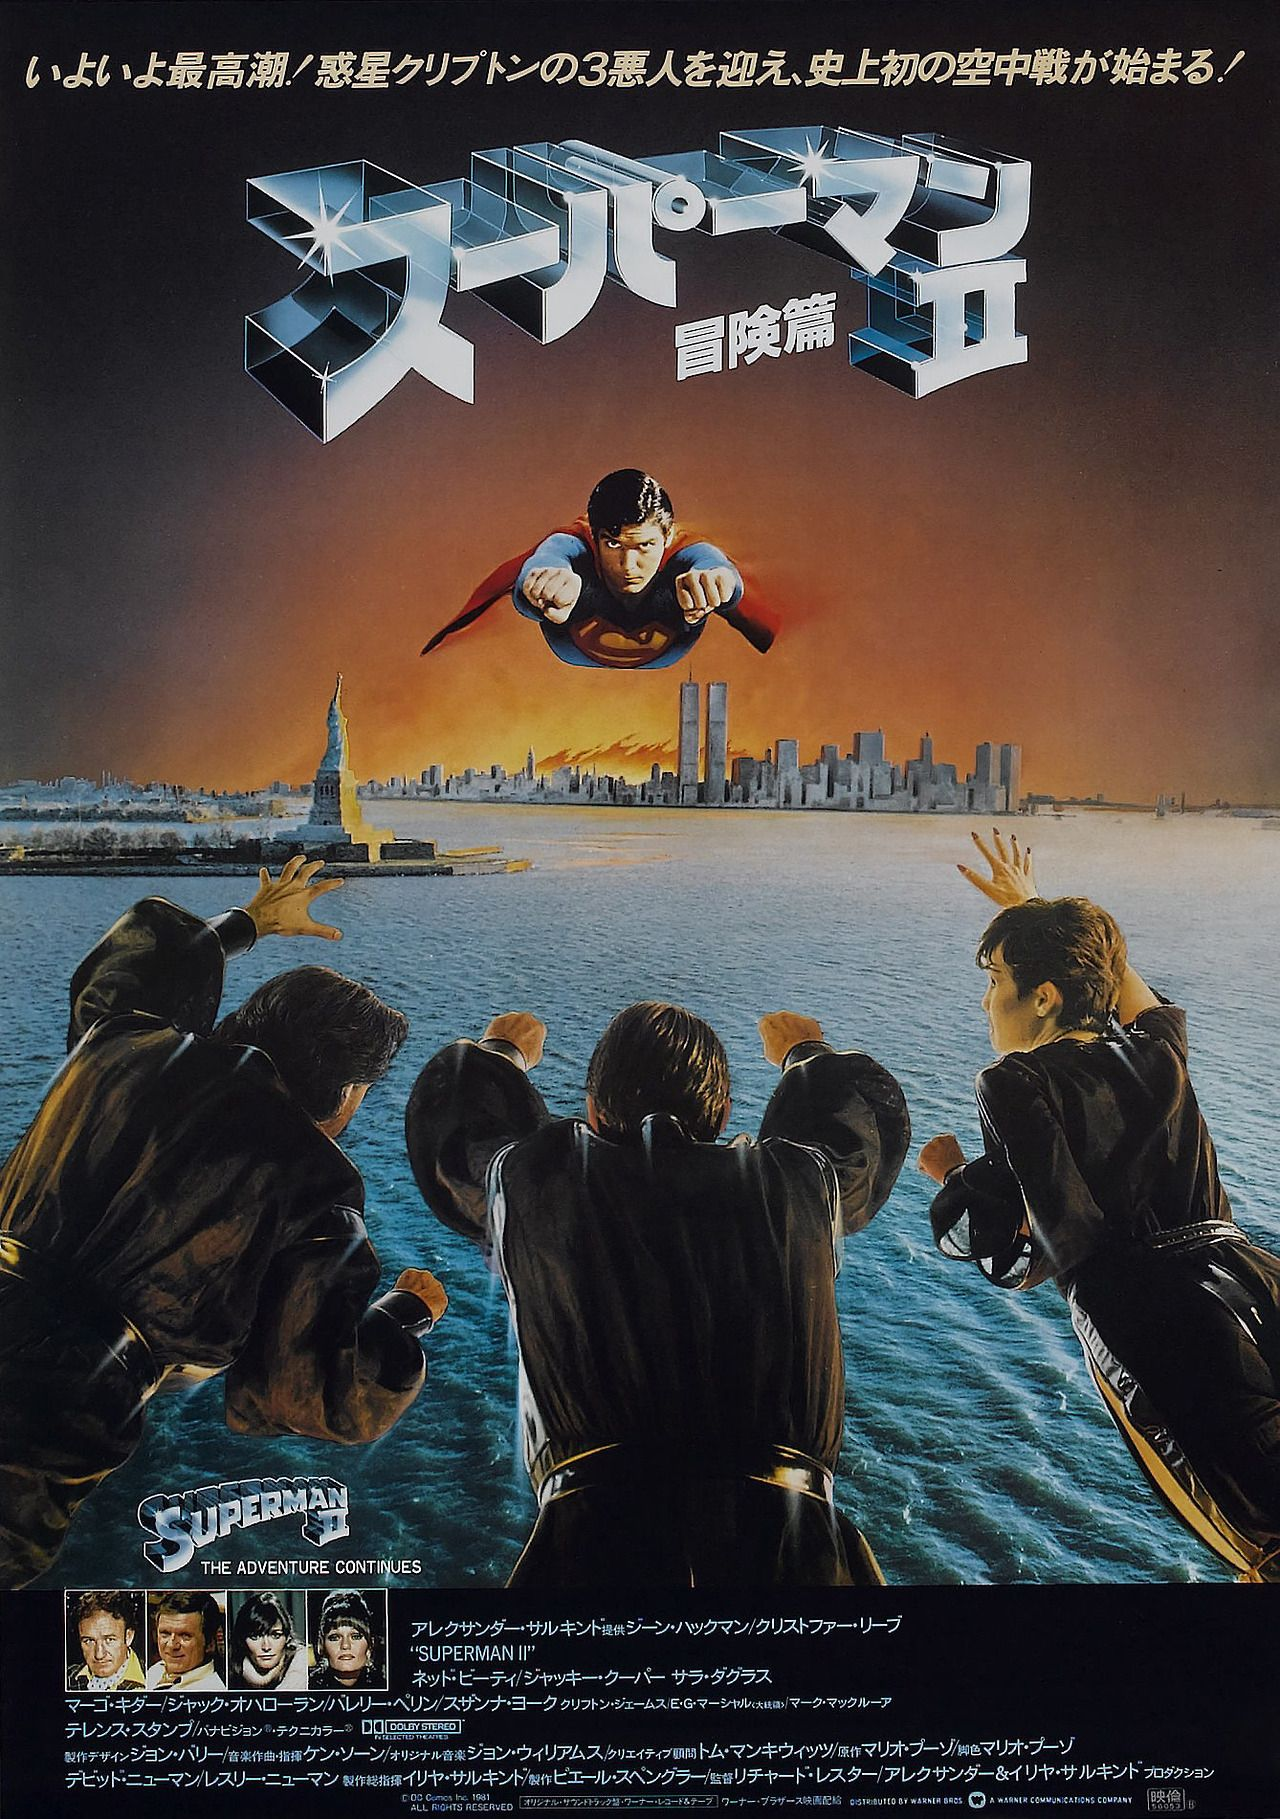 Superman II (1980) starring Christopher Reeve — Japanese Film Poster